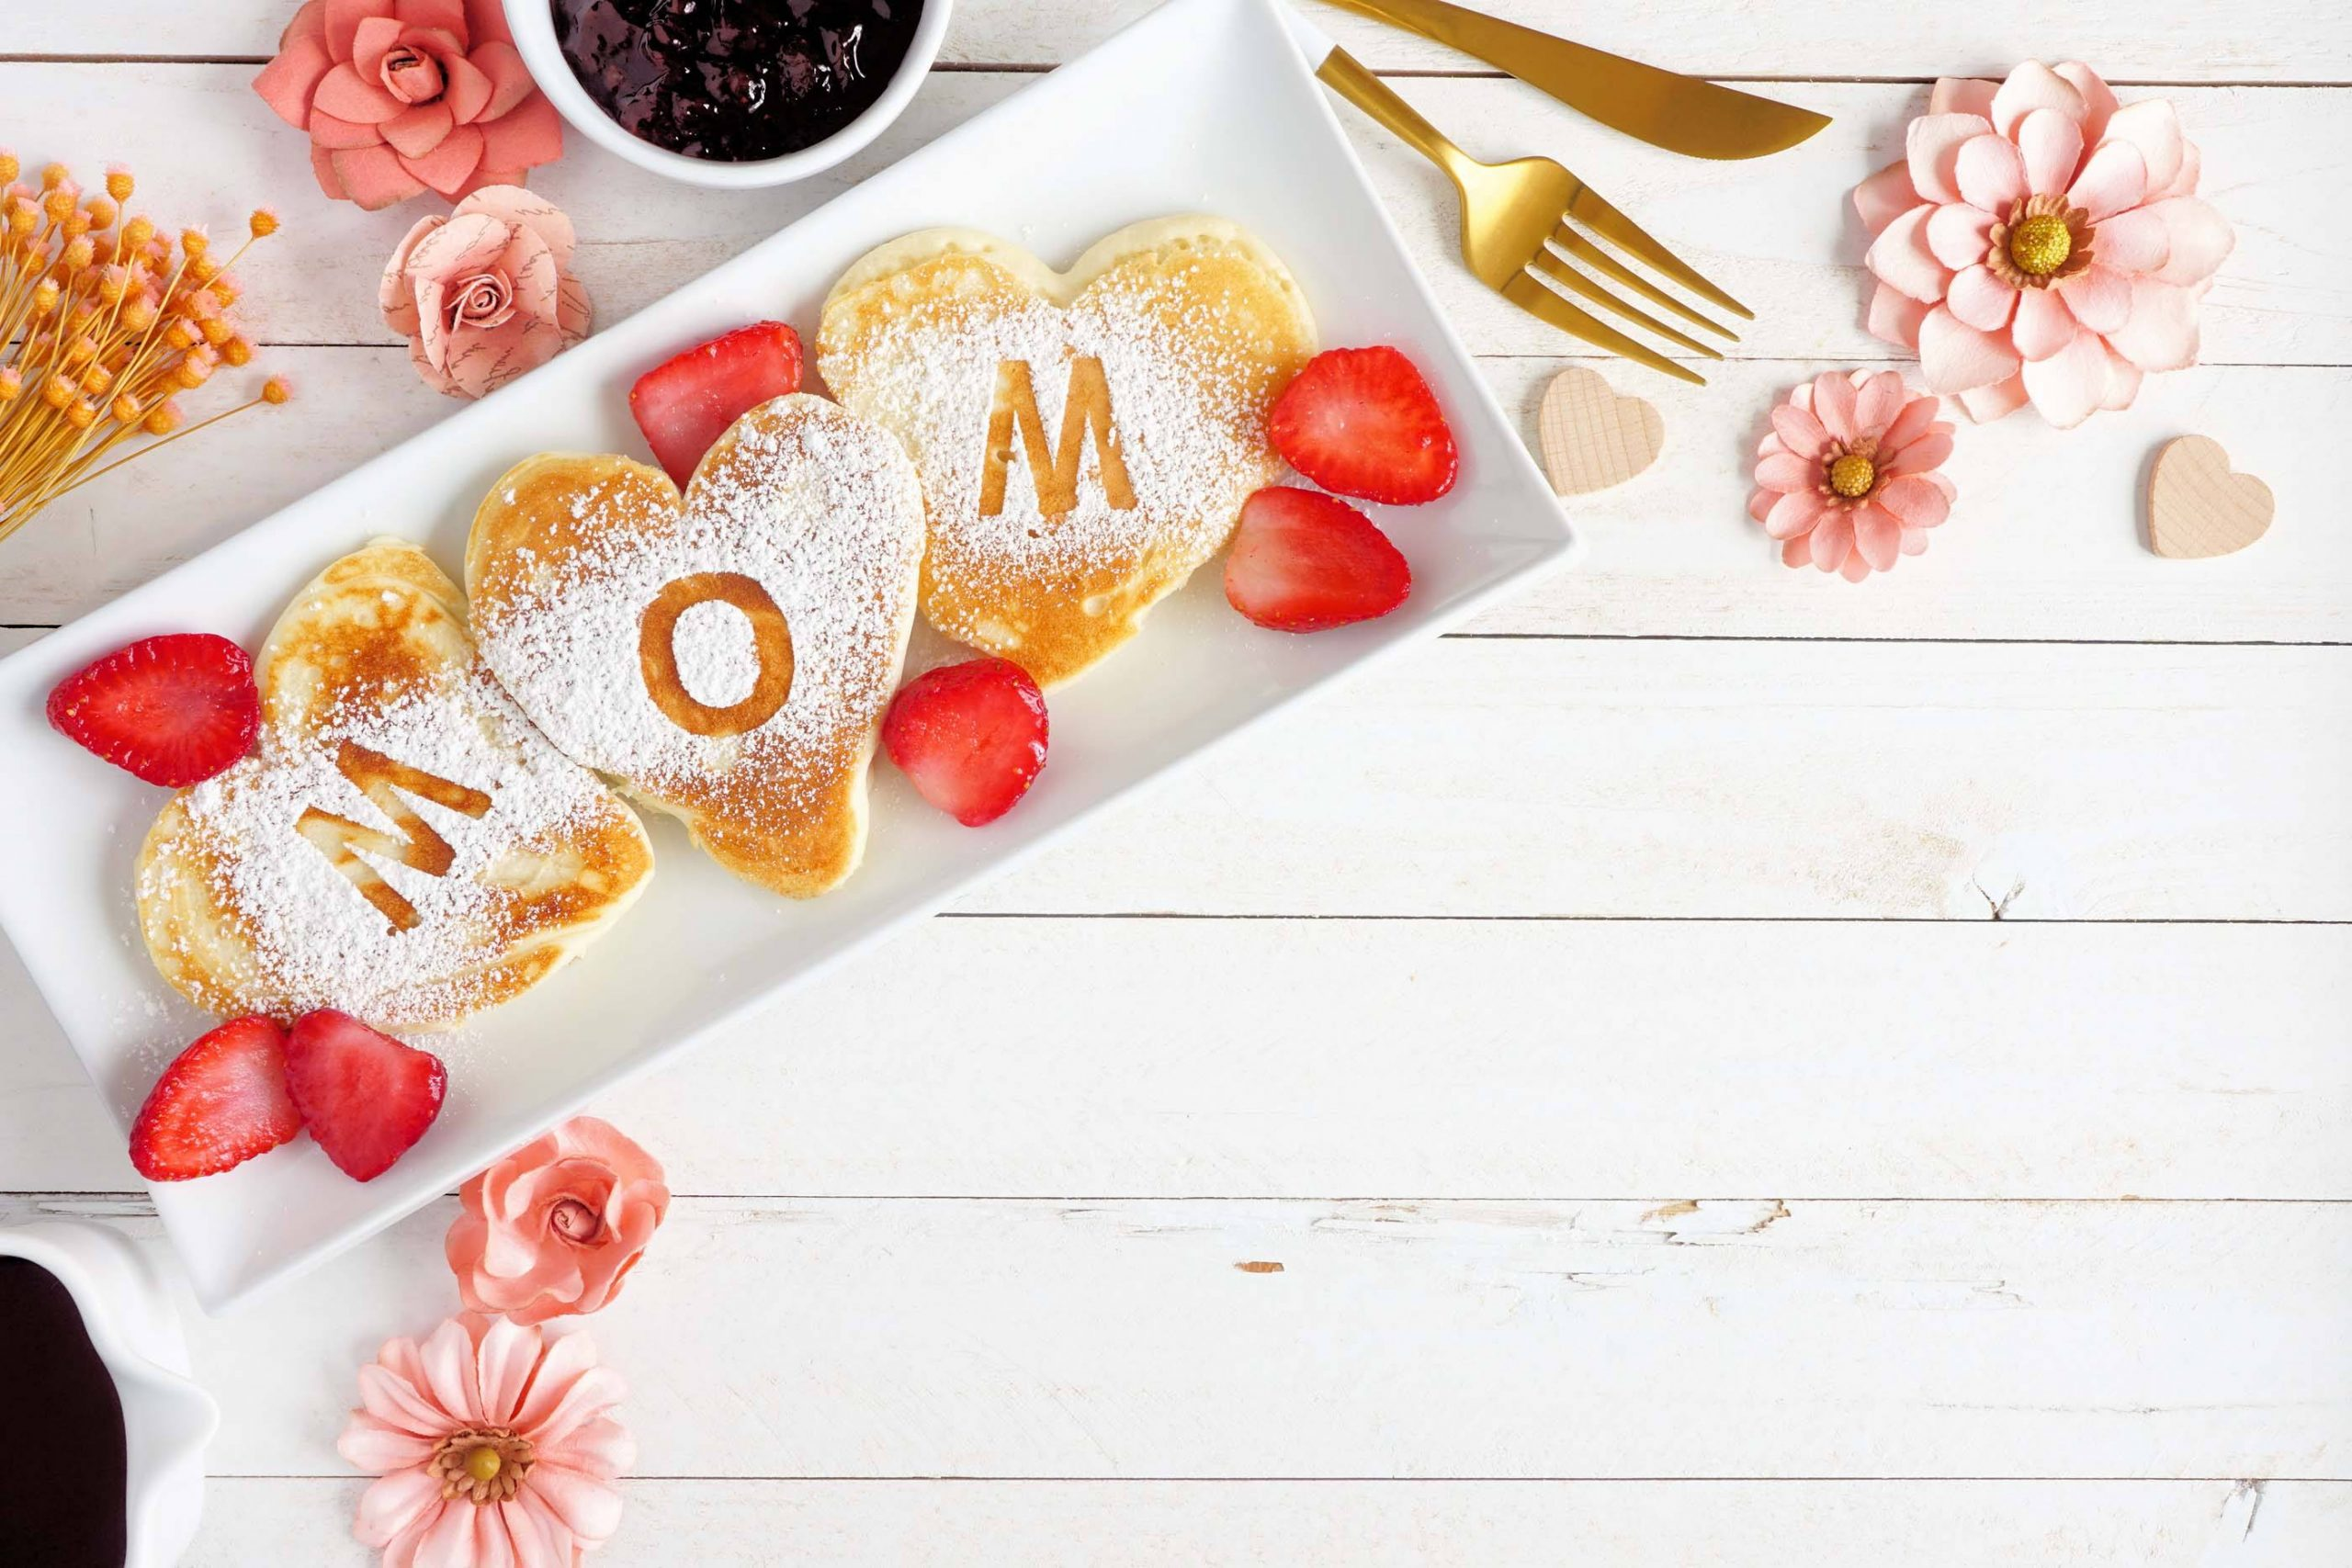 Super Easy Breakfast Recipes Kids Can Make for Mom this Mother's Day